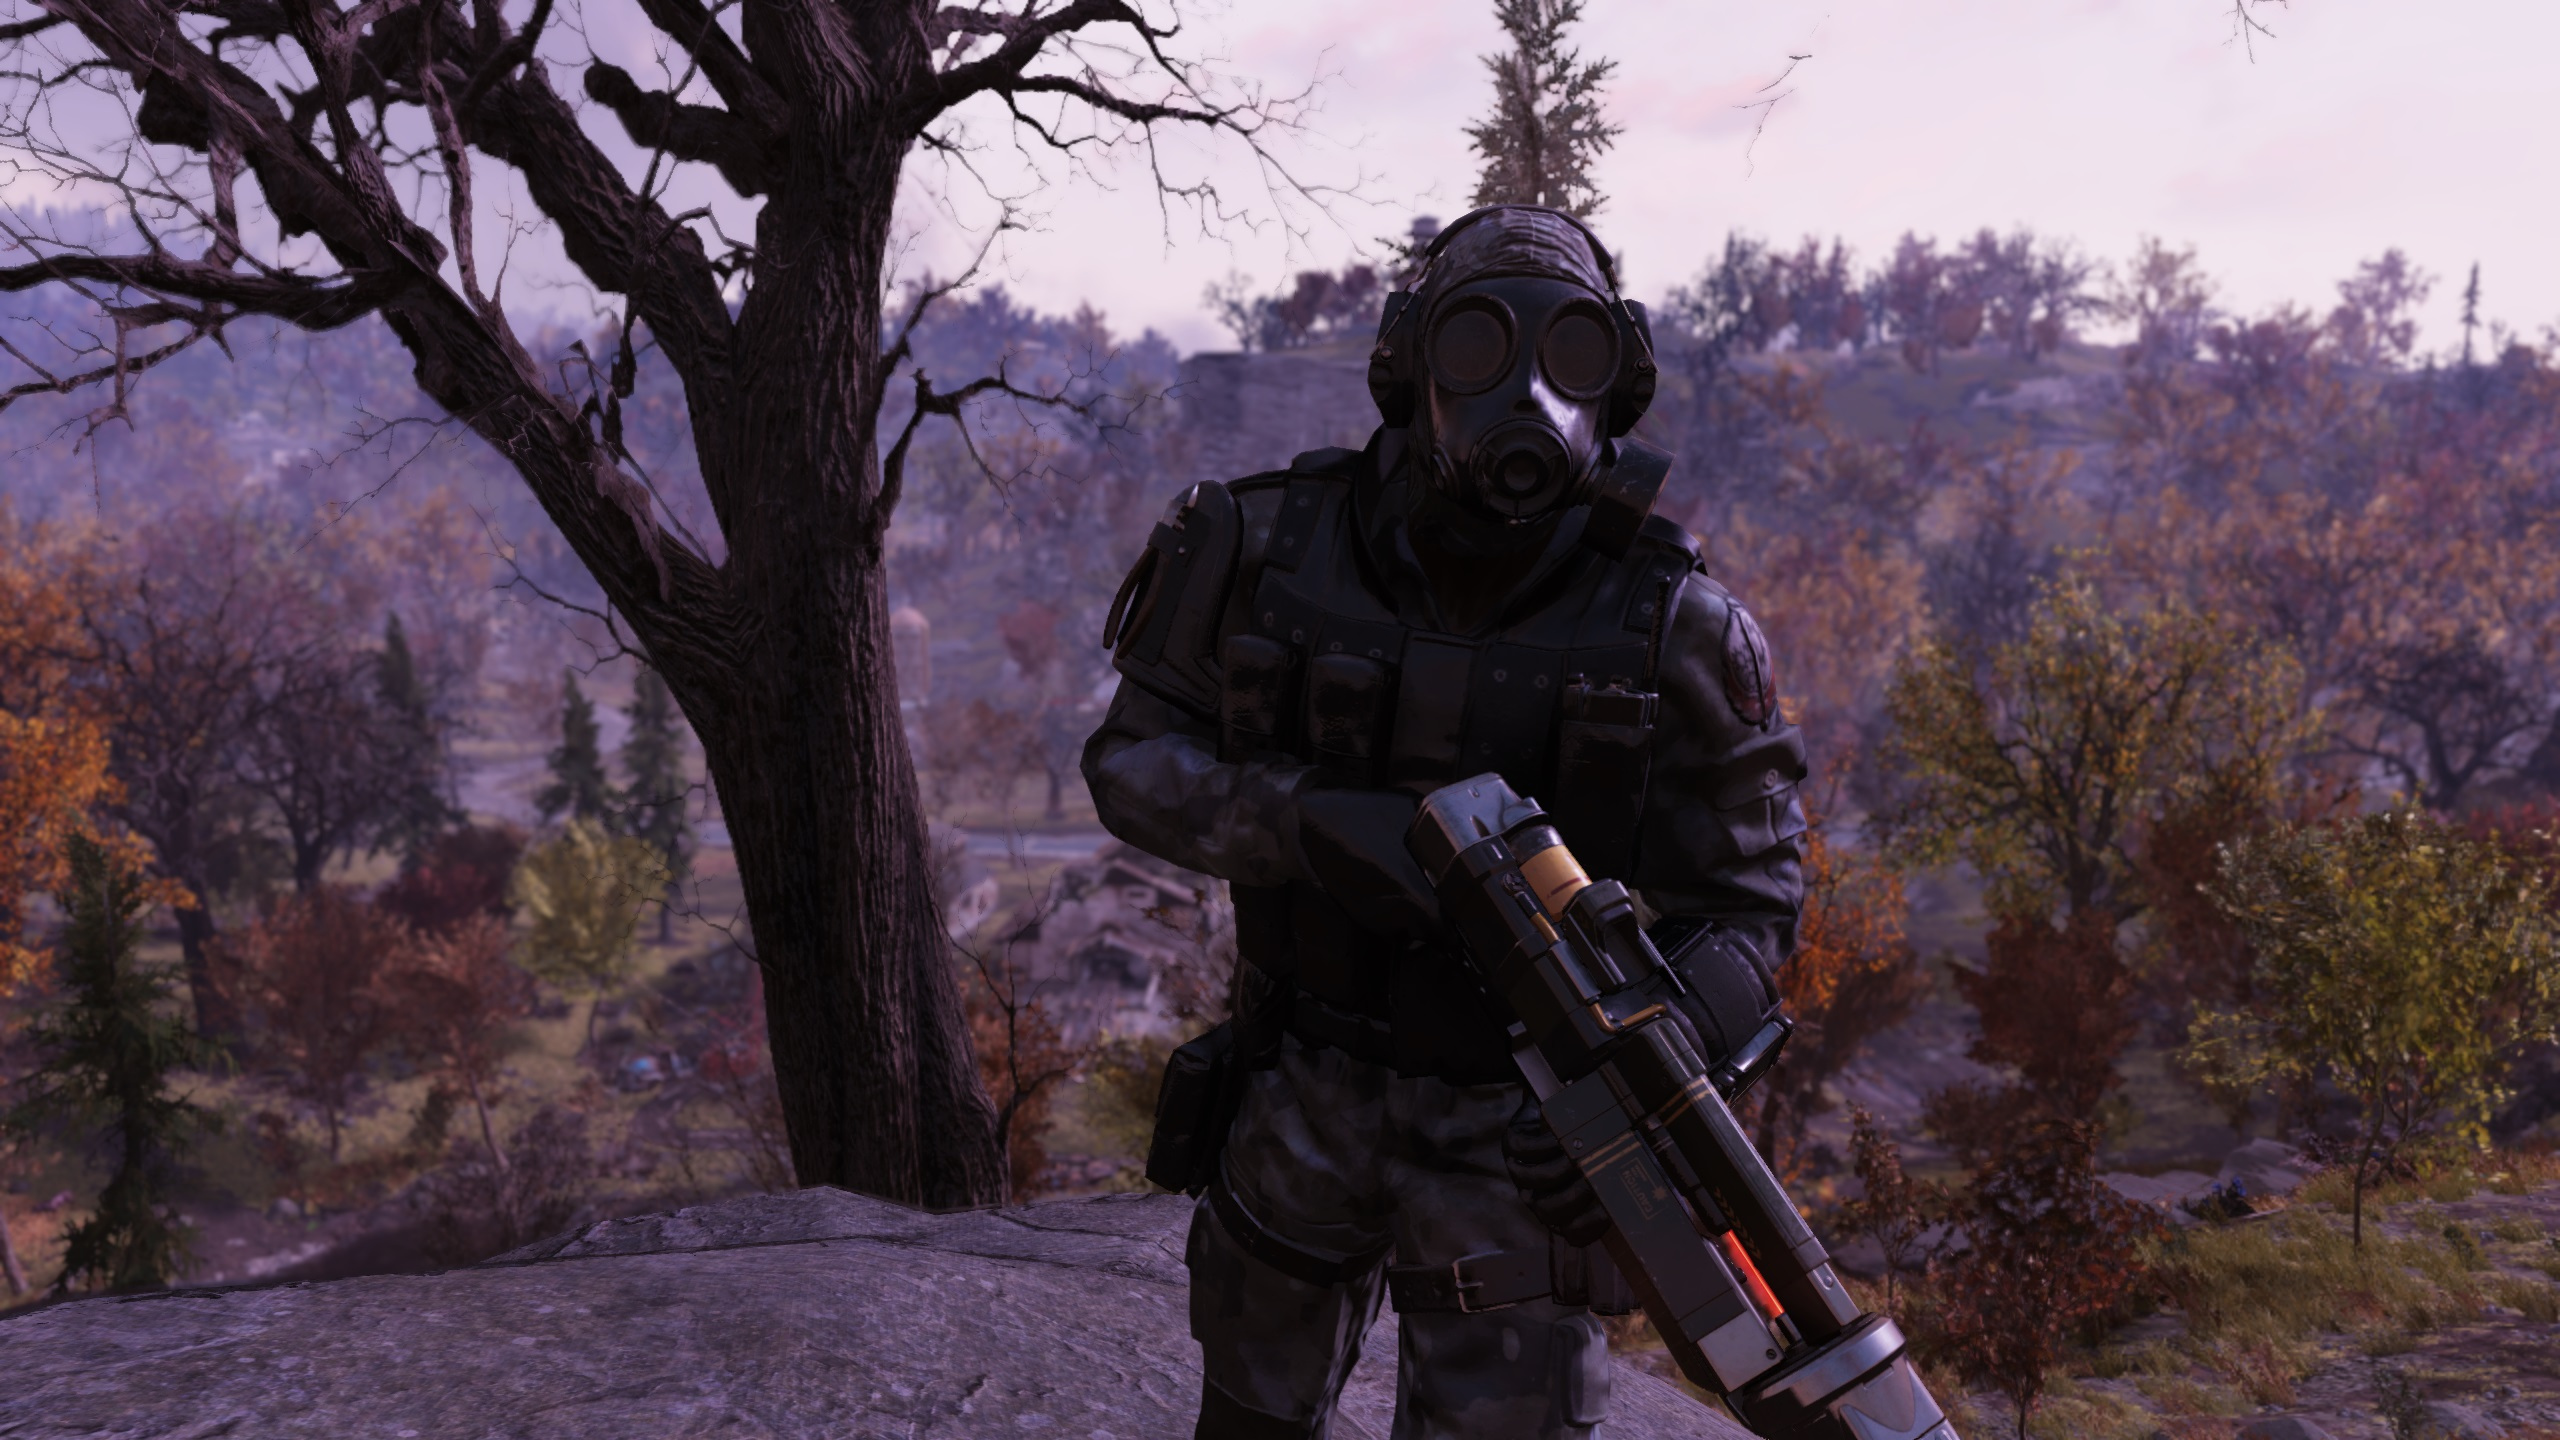 ★★★ BoS Spec Ops Outfit + Helmet | 1% DROP CHANCE | FAST DELIVERY |